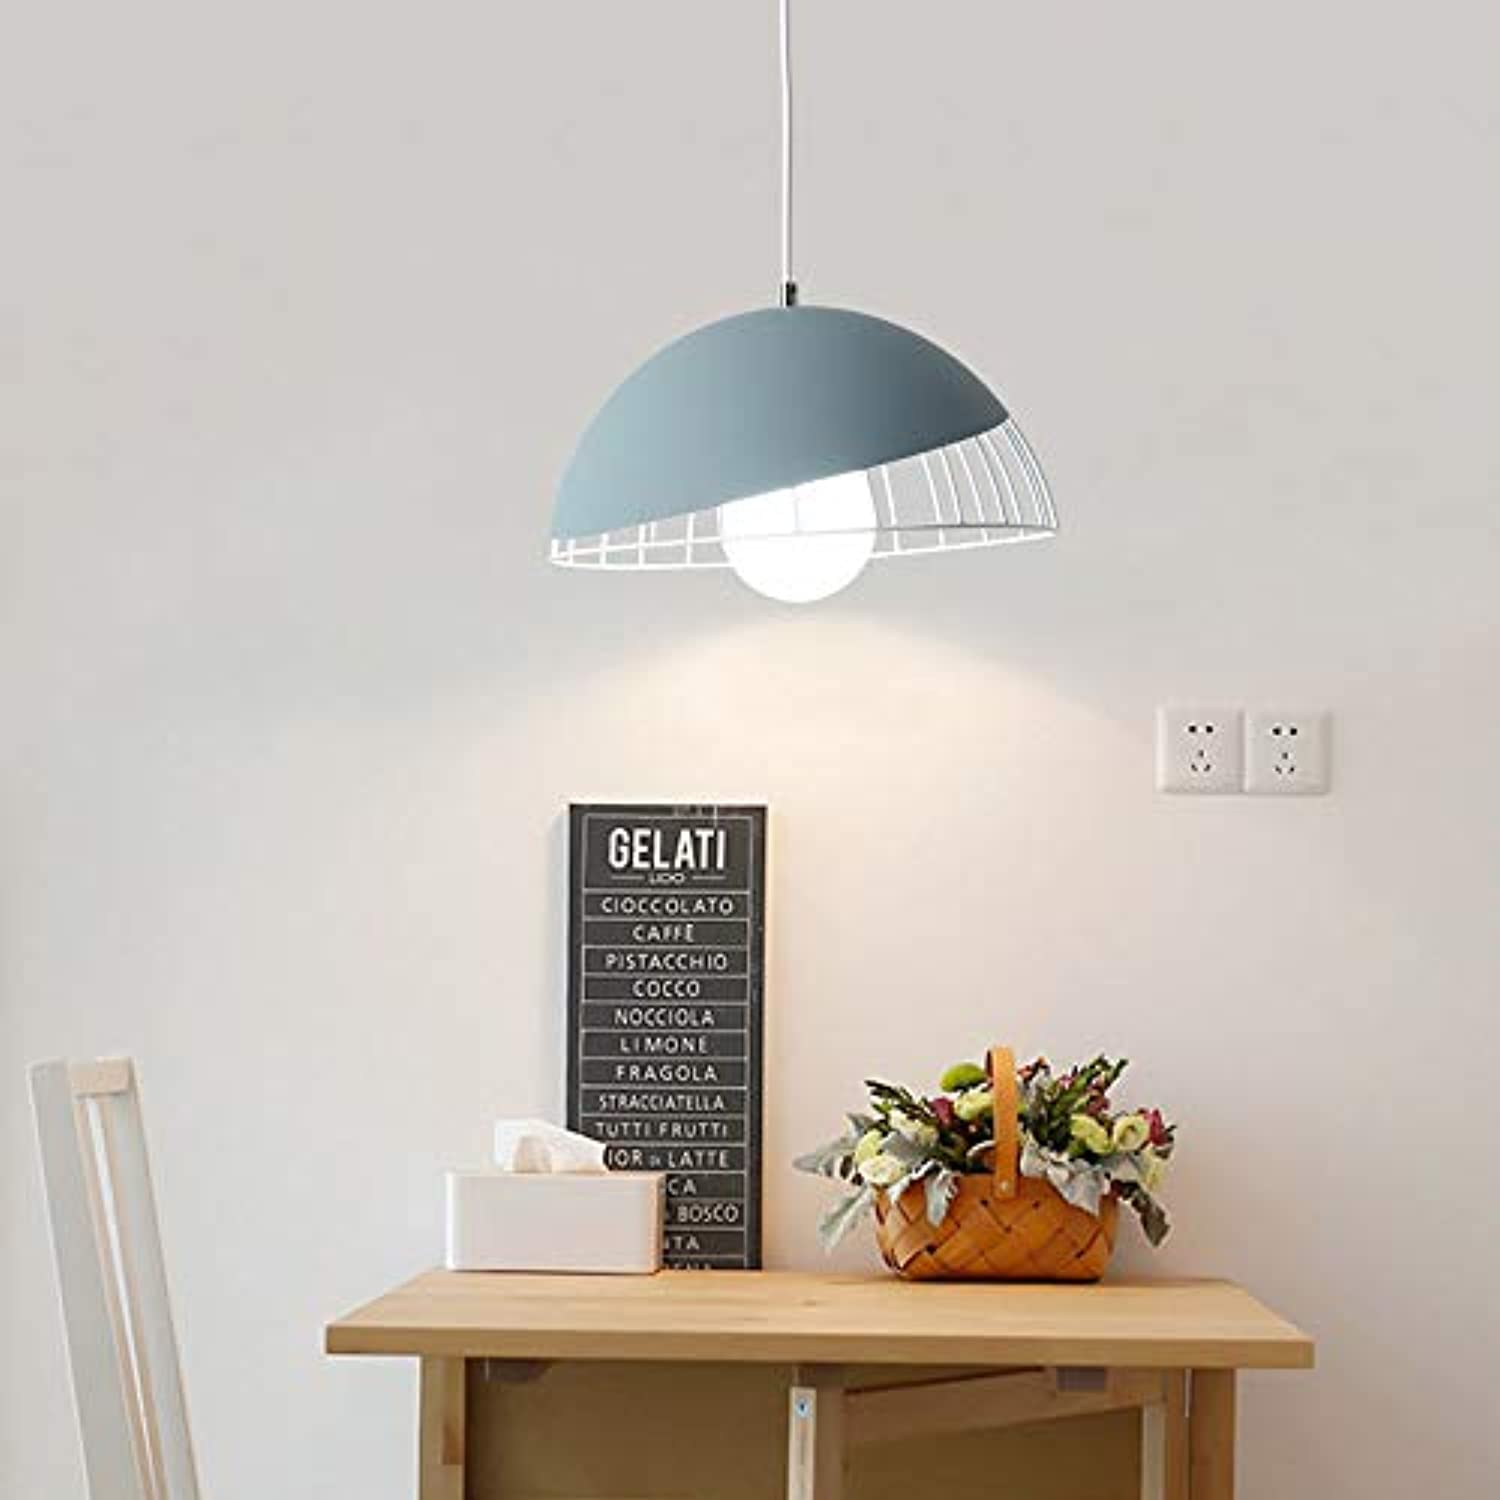 YAYONG Chandelier Restaurant Modern Minimalist Nordic Creative Table Lamp Round LED Macaron Pendant Light,Blau